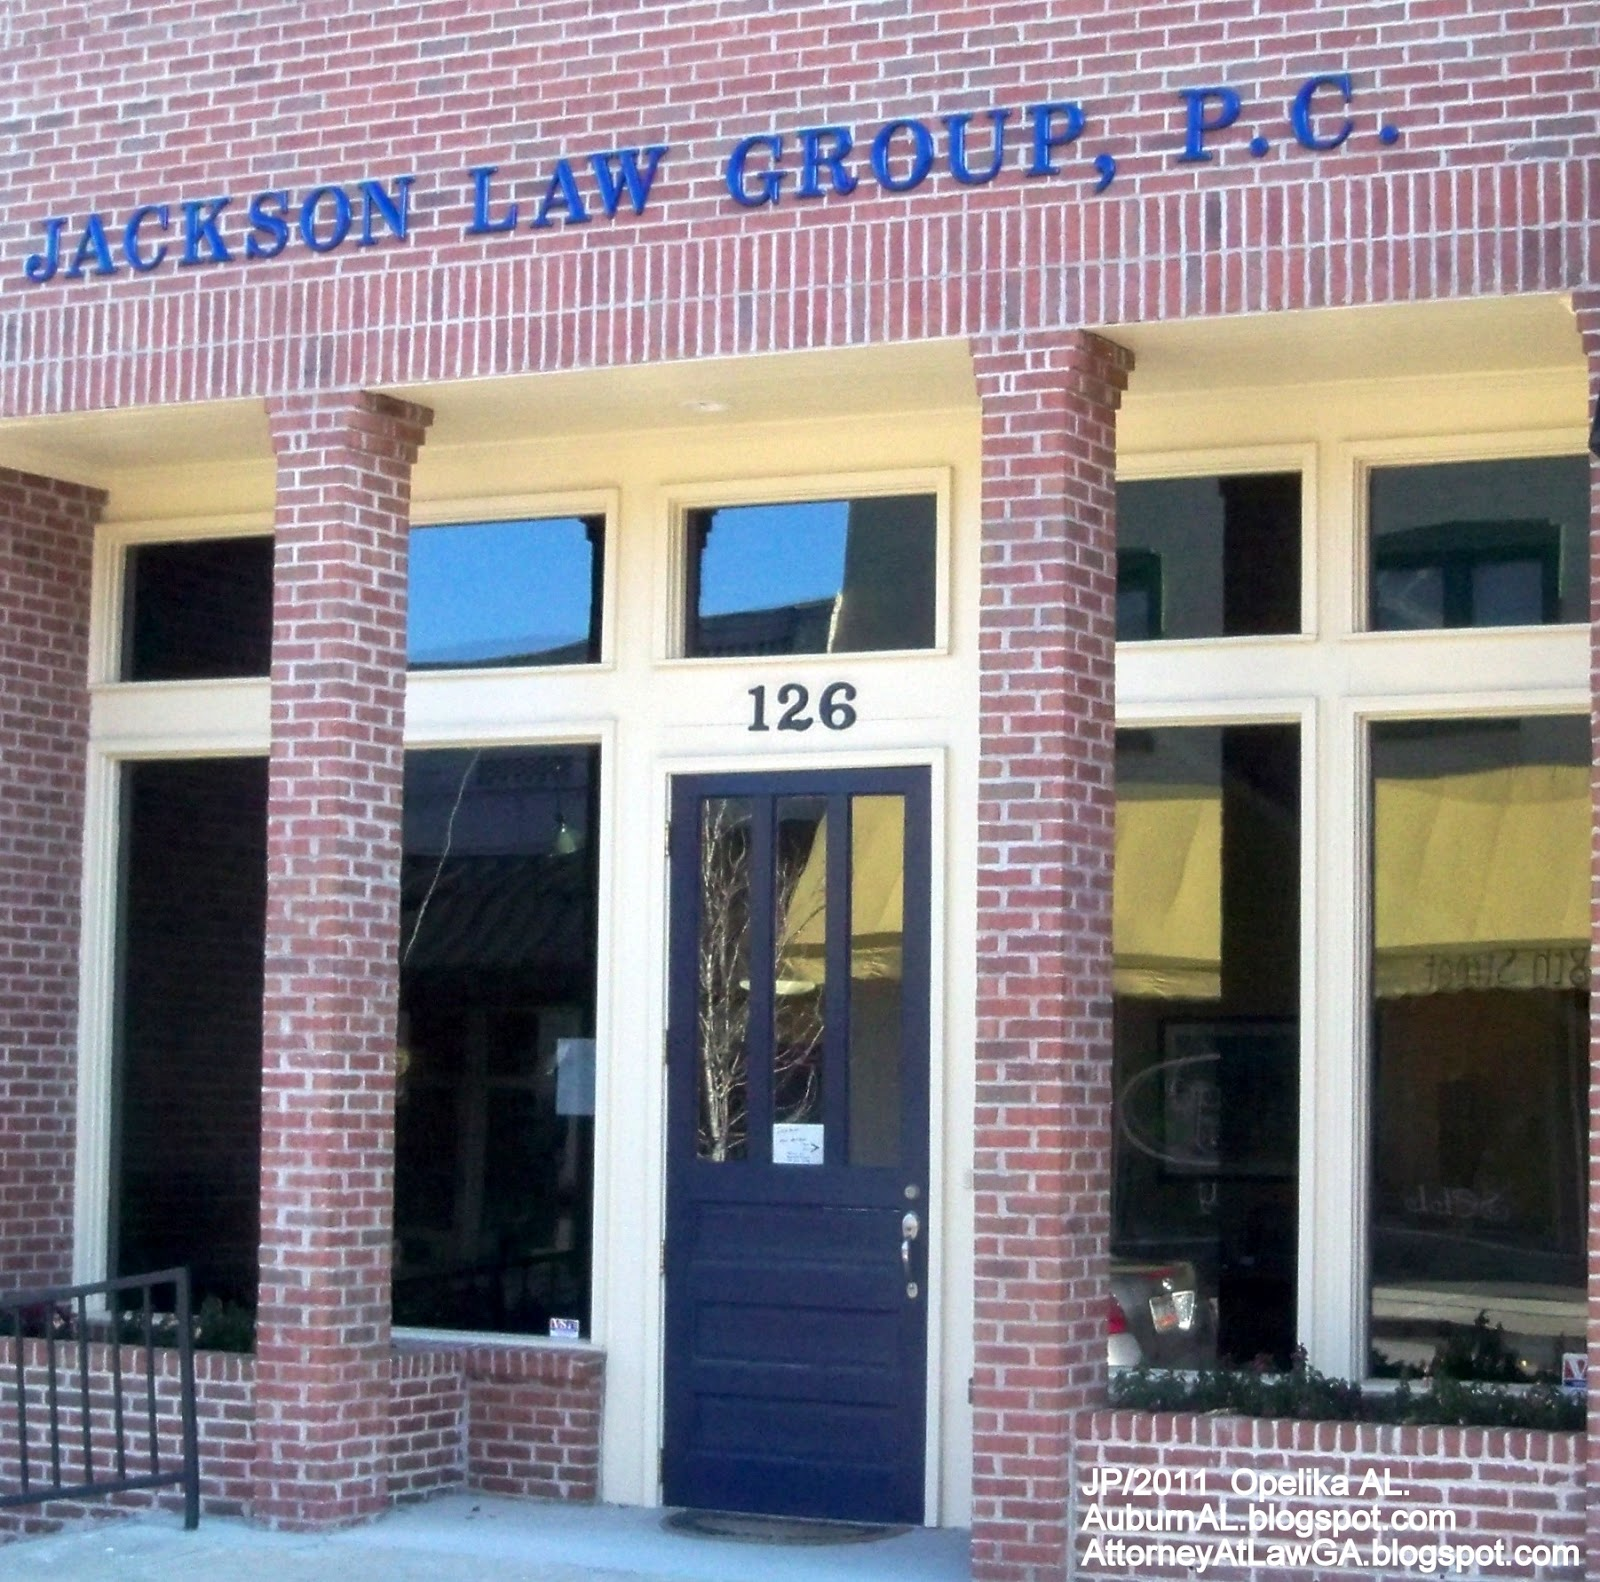 http://3.bp.blogspot.com/-83CUzCG7nOE/T-RvV3RZEbI/AAAAAAAFQoQ/CD0Z9R-xWYw/s1600/JACKSON+LAW+GROUP+PC.+OPELIKA+ALABAMA,Jackson+Law+Group+Attorneys+At+Law+Lawyer+Offices+Lee+County+AL..JPG